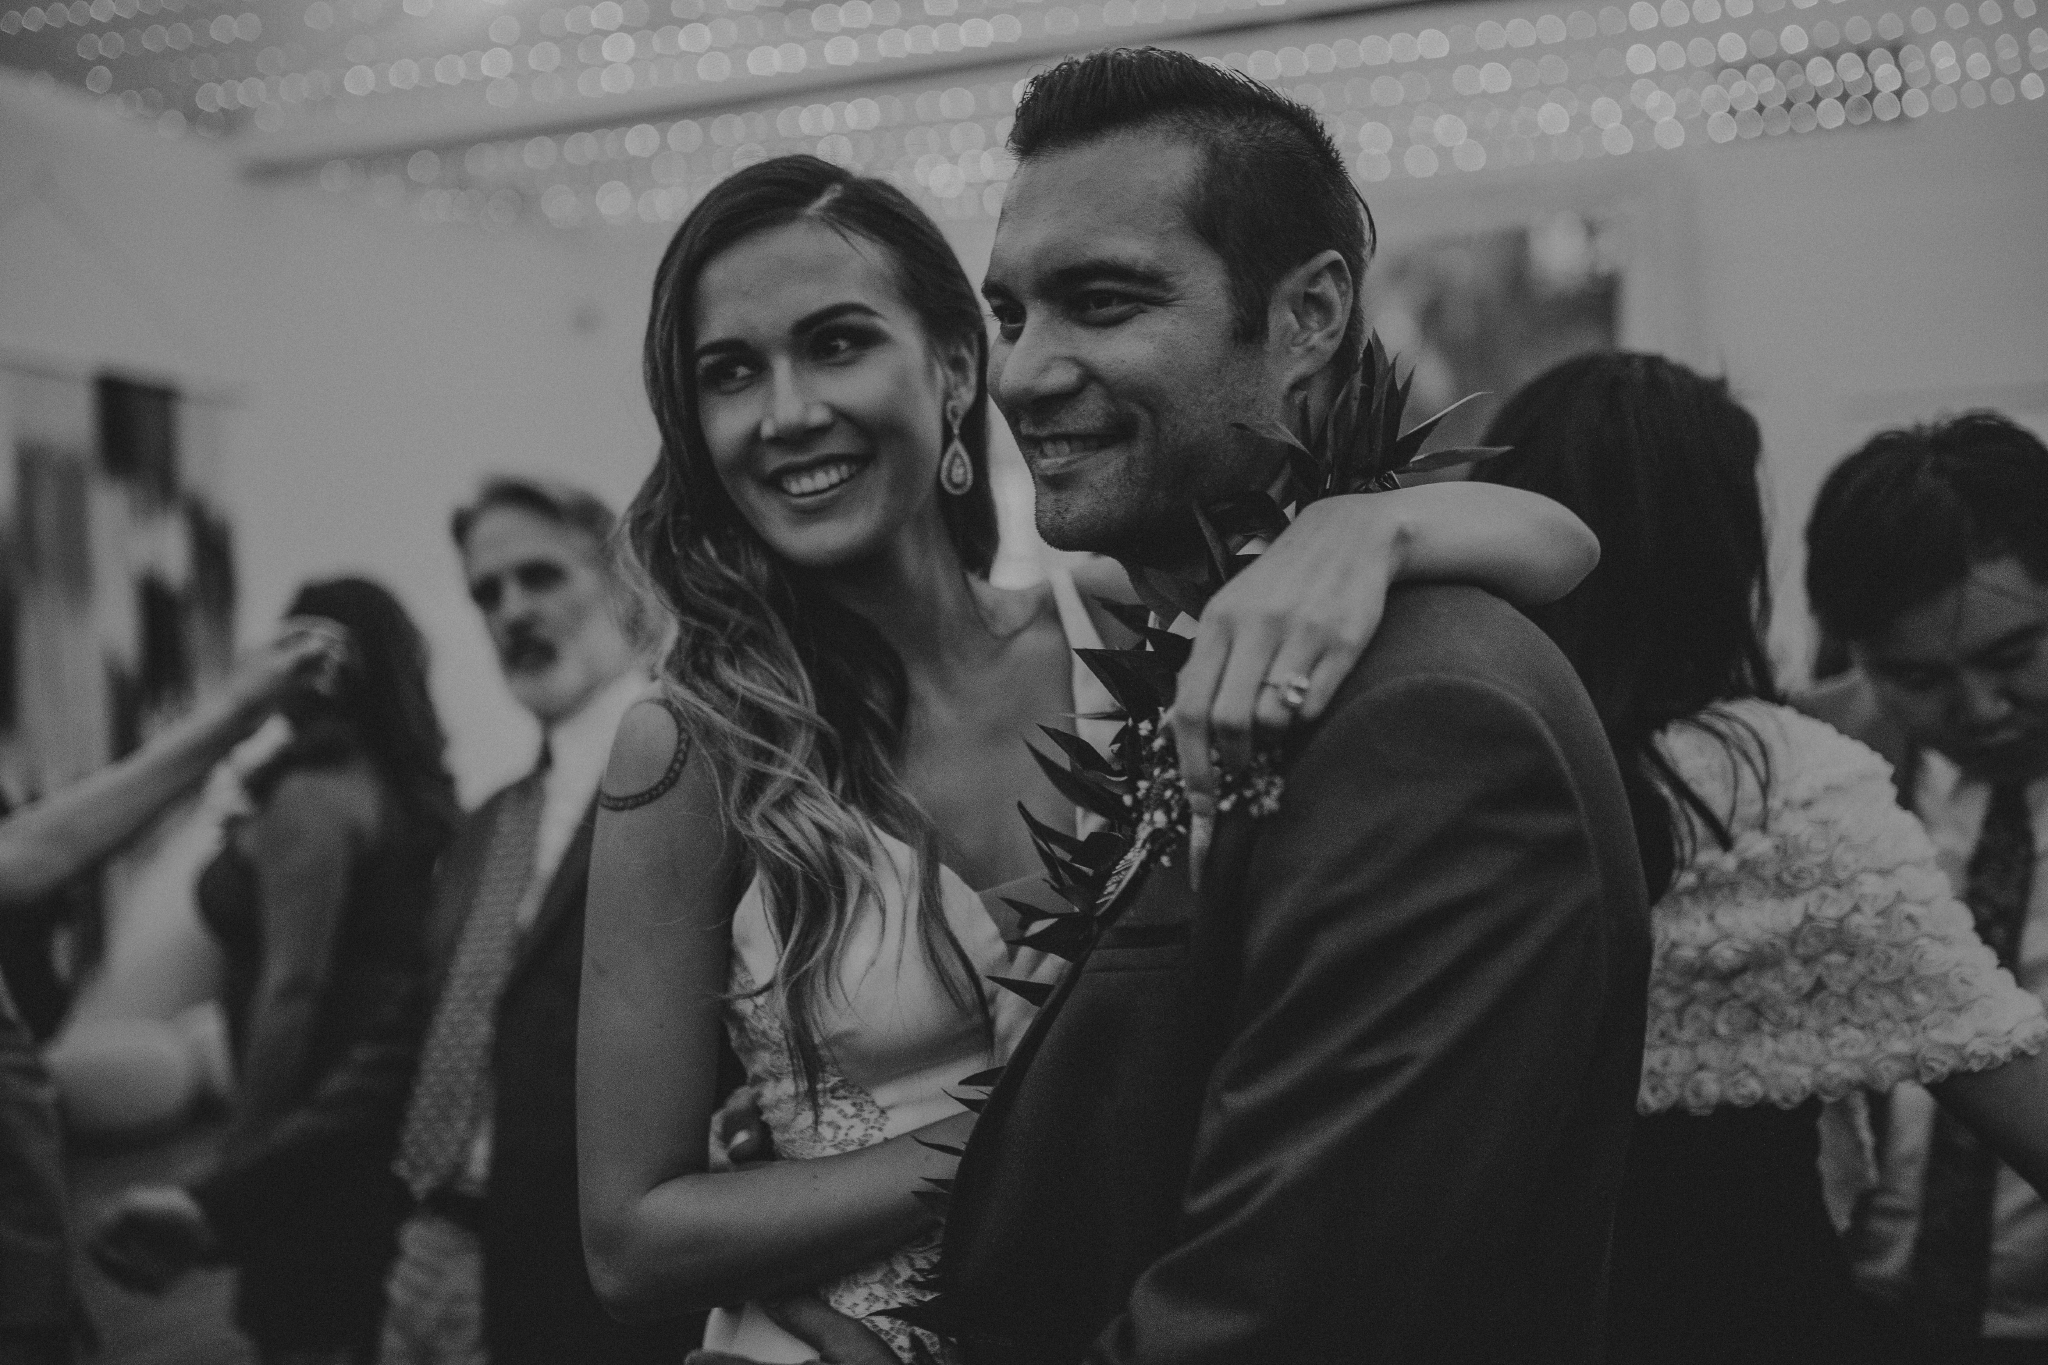 san diego wedding   photographer   monotone picture of bride posing with man